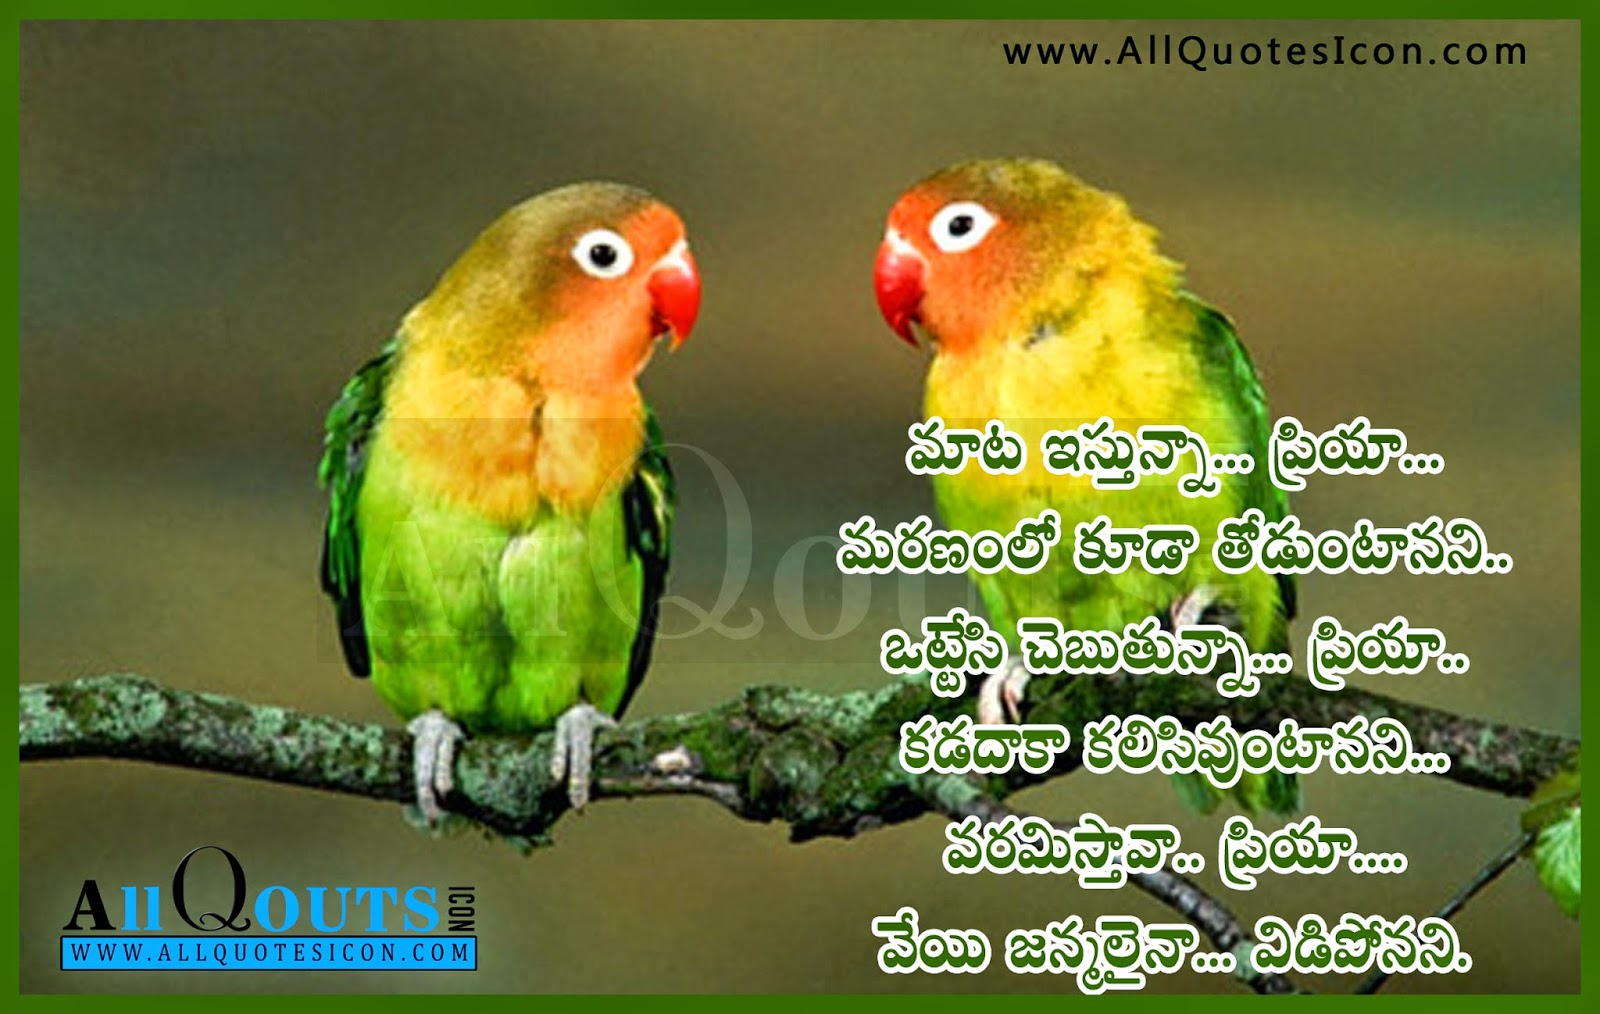 Telugu Love Quotes Magnificent Telugu Love Quotes And Images  Www.allquotesicon  Telugu